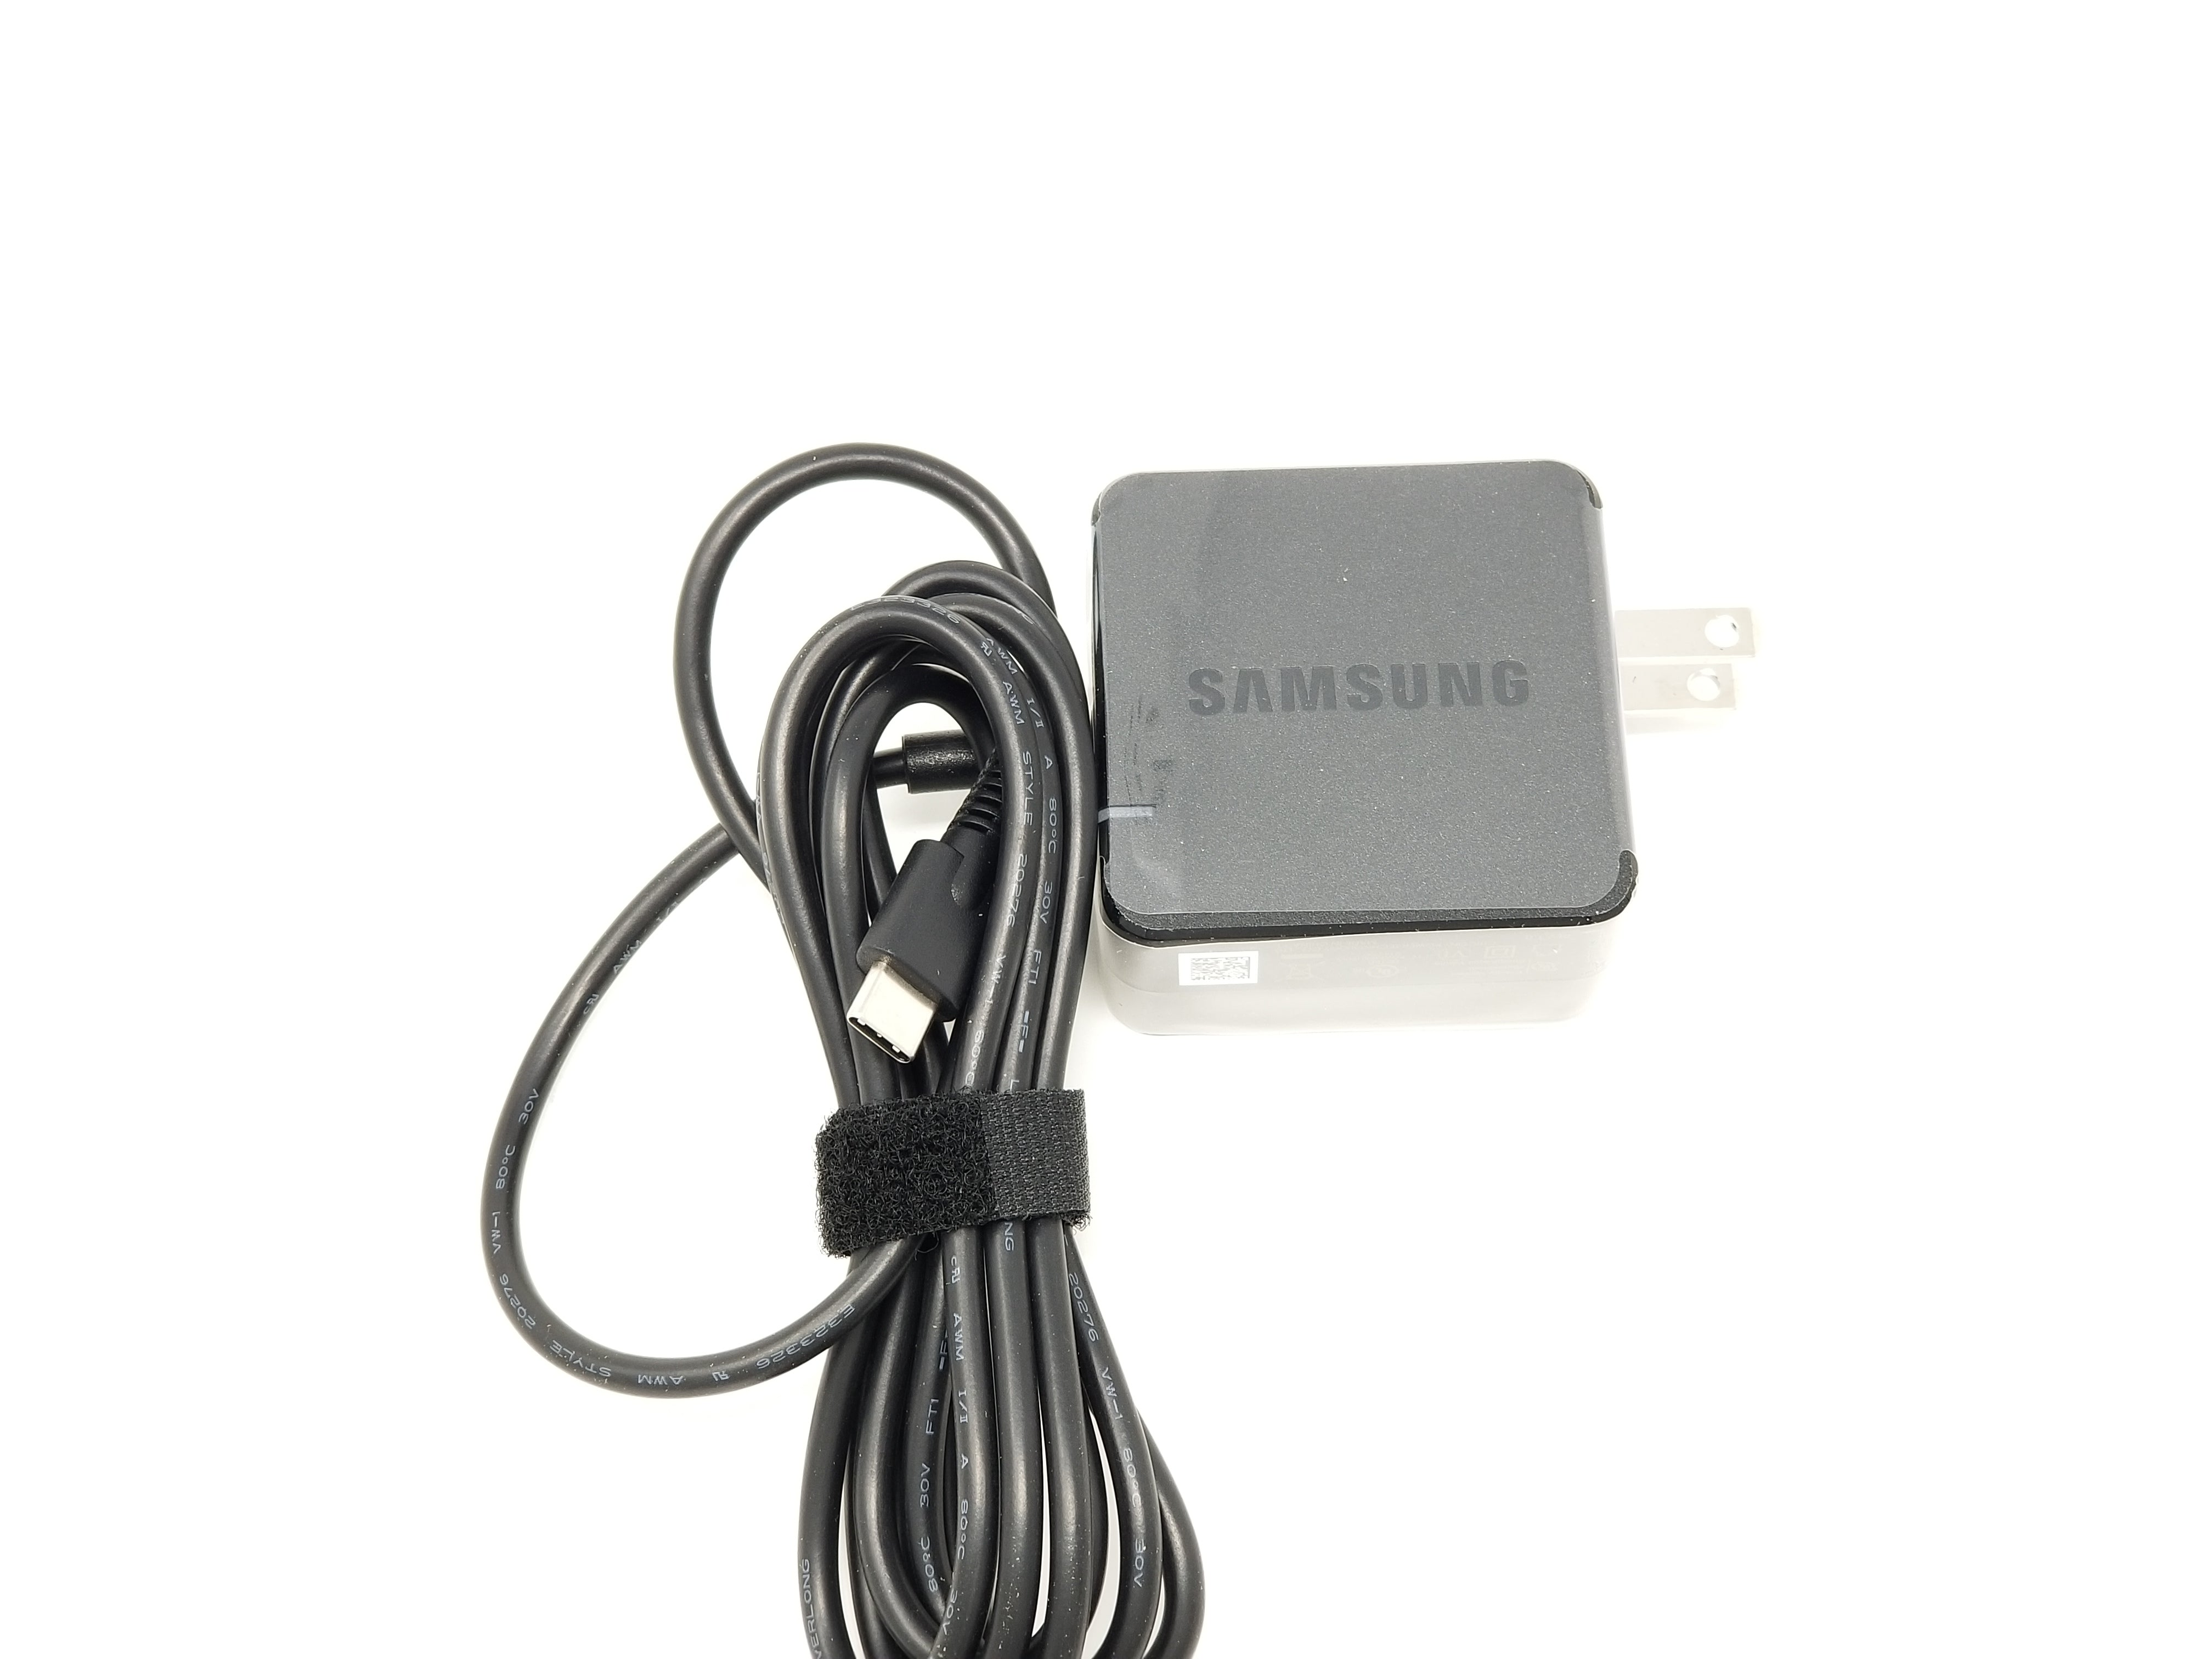 Samsung Chromebook XE510C24 AC Adapter / Charger - PD-30ABUS / BA44-00336A / W16-030N1A